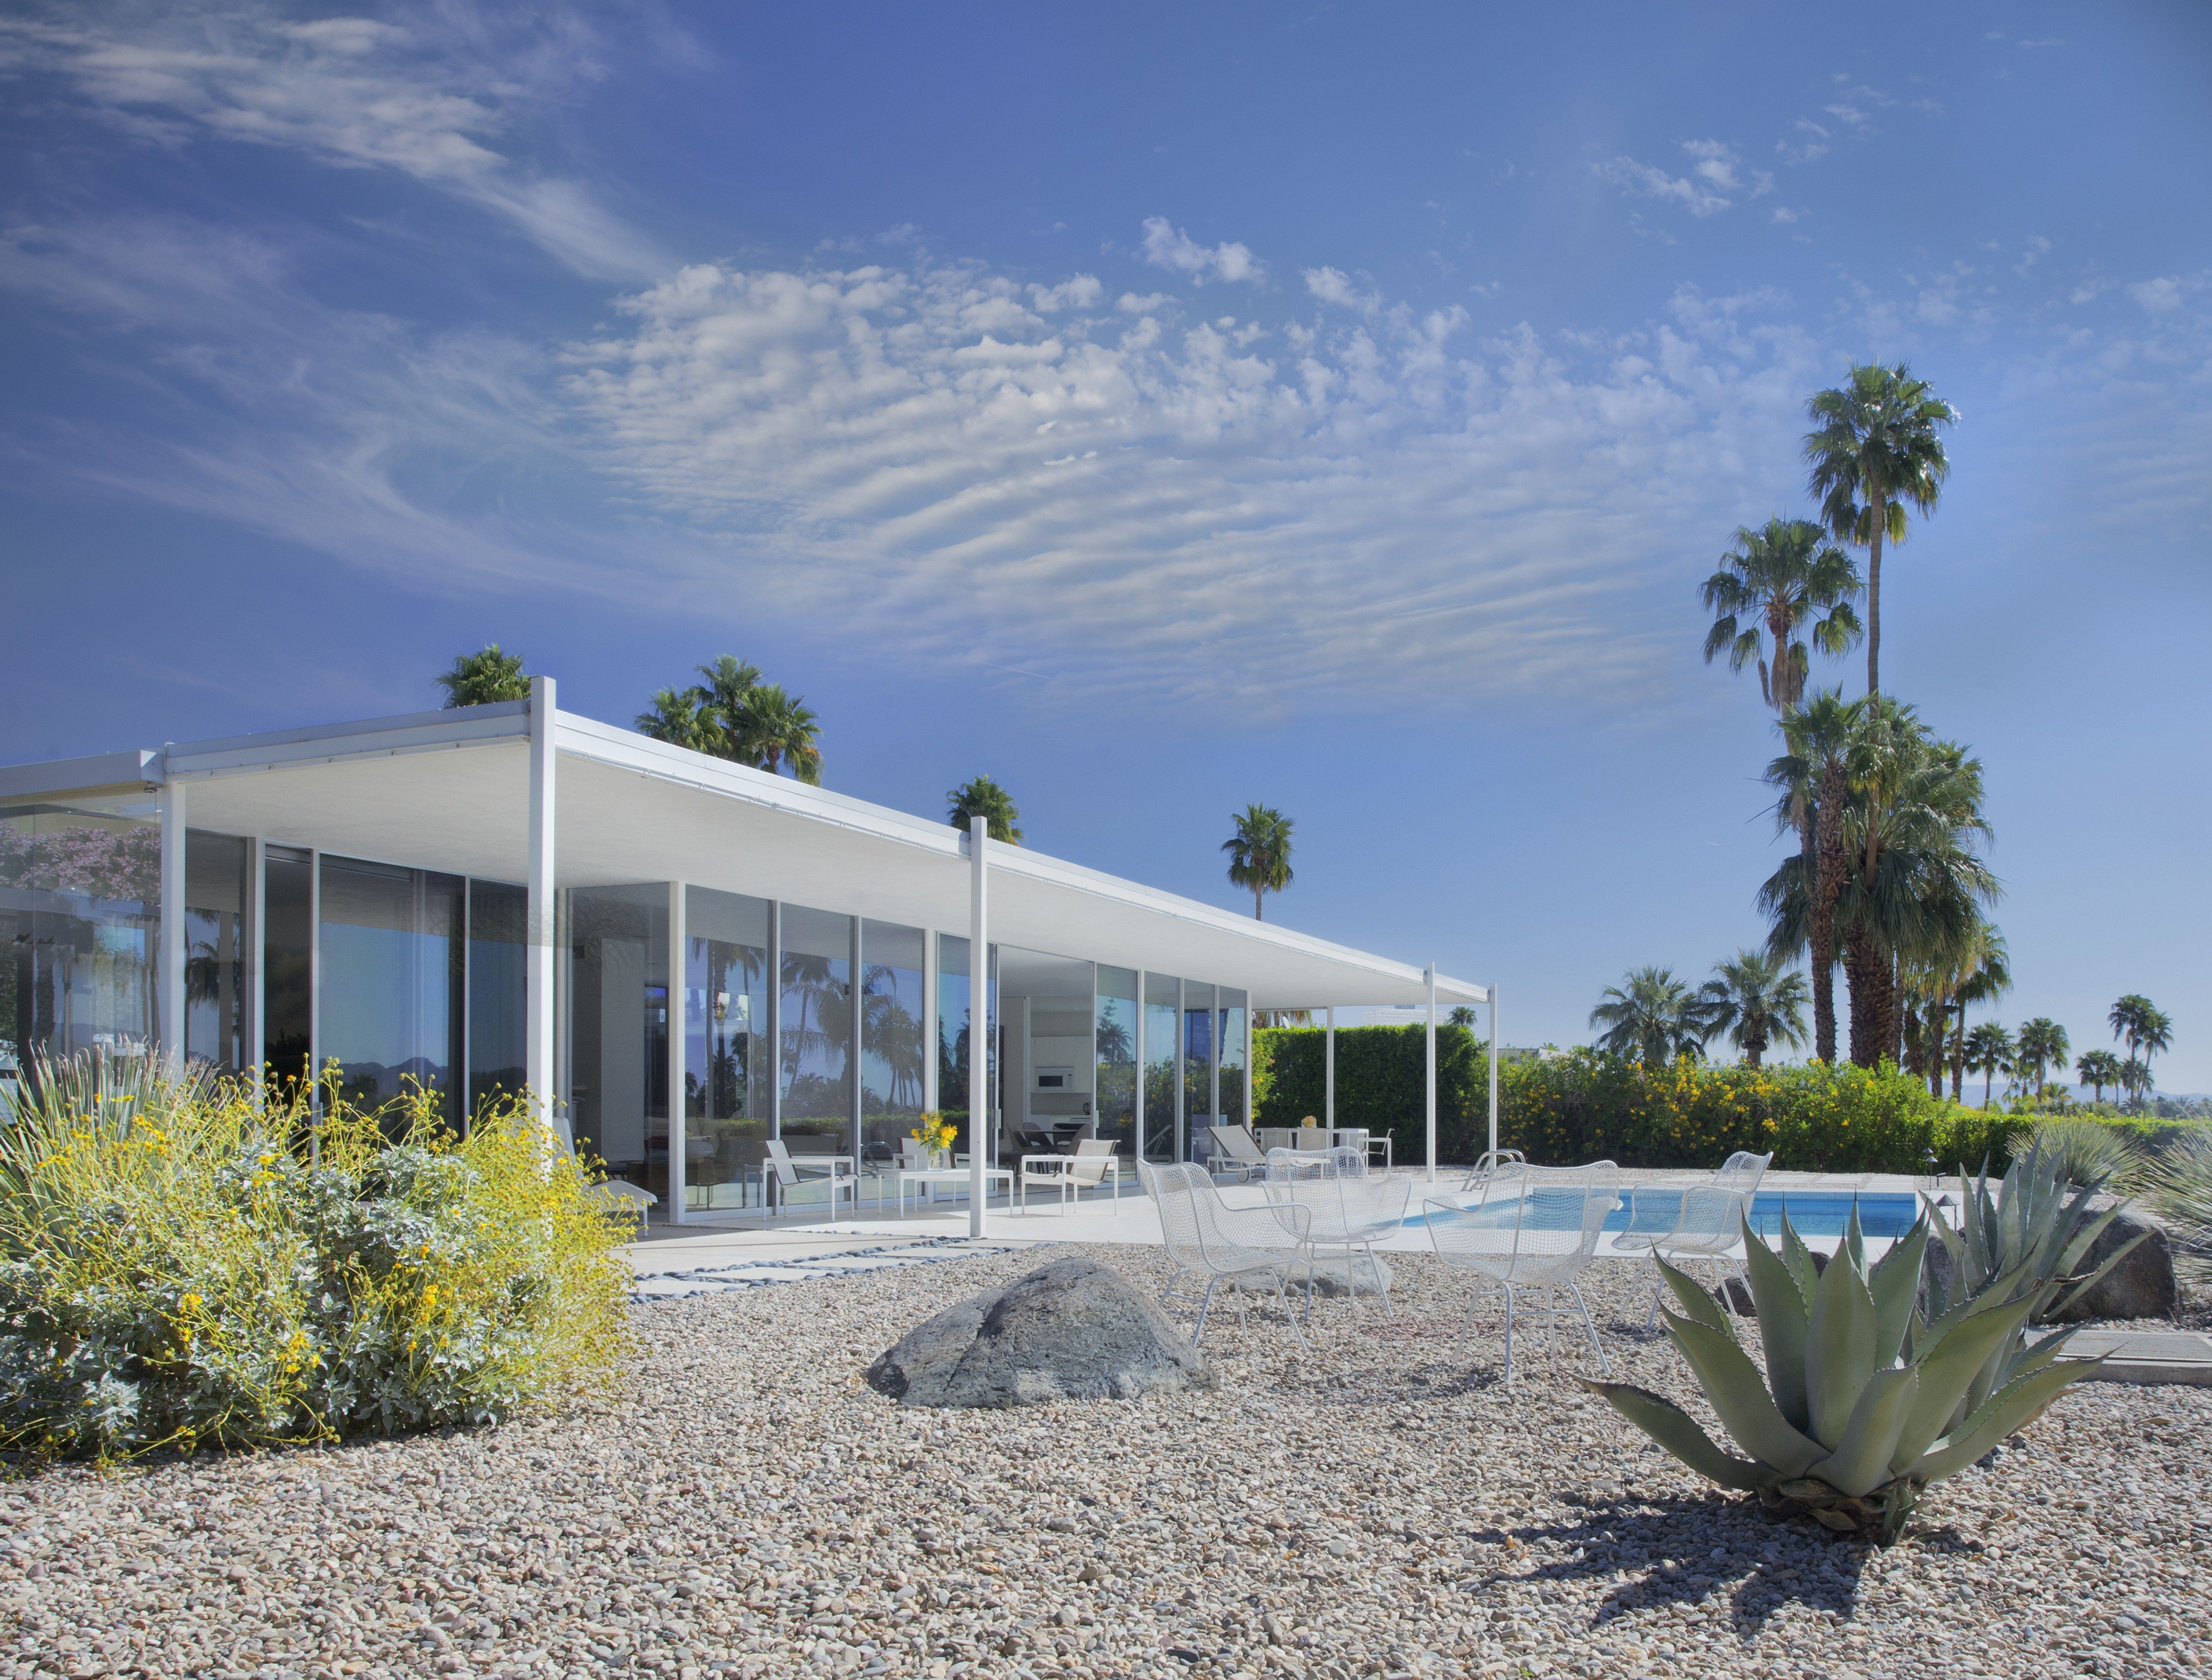 The Most Iconic Midcentury Modern Homes In Palm Springs Palm